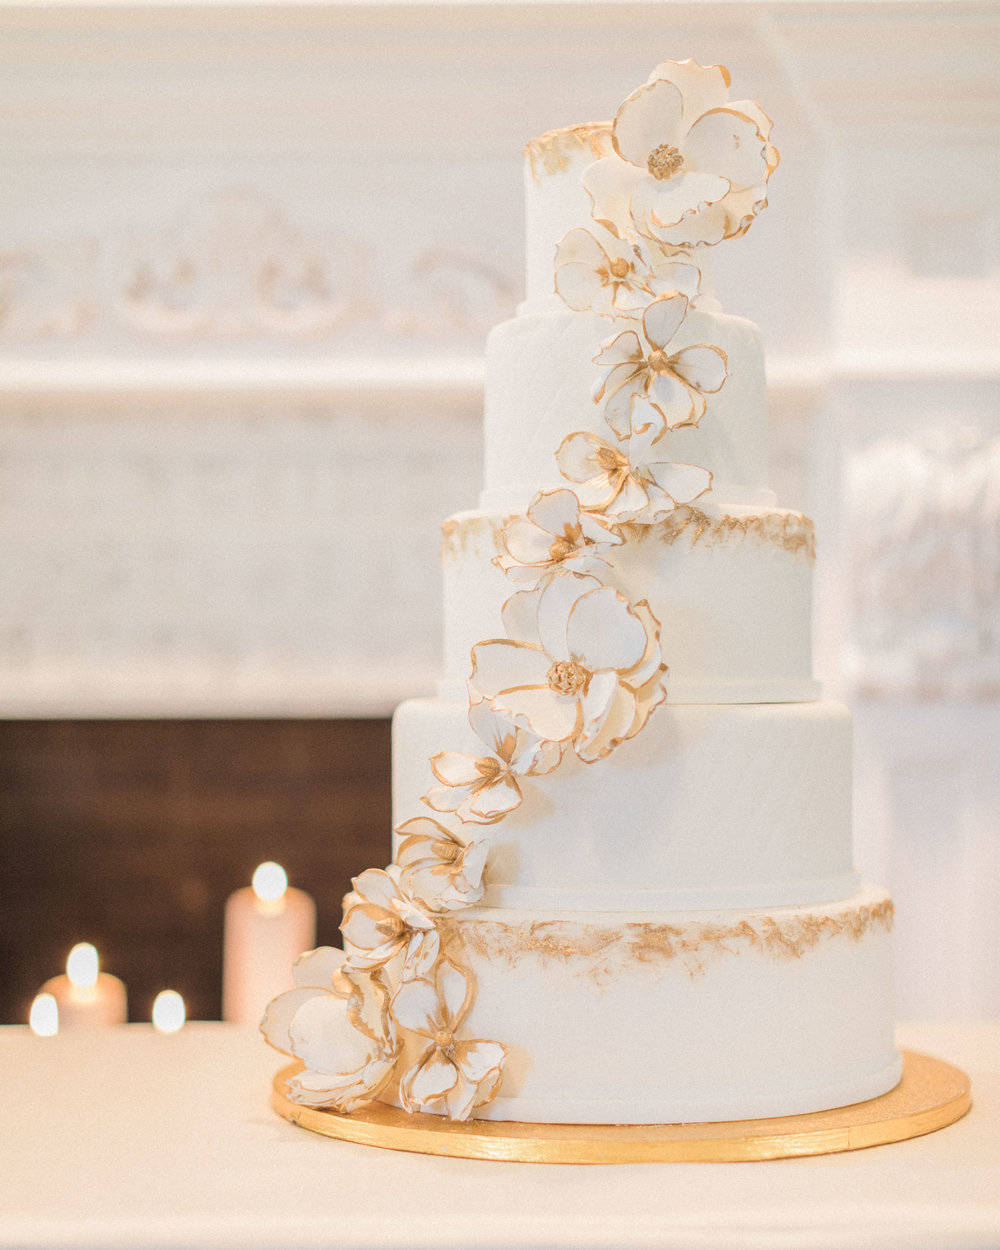 White and Gold Wedding Cake | Edible Art Bakery Raleigh